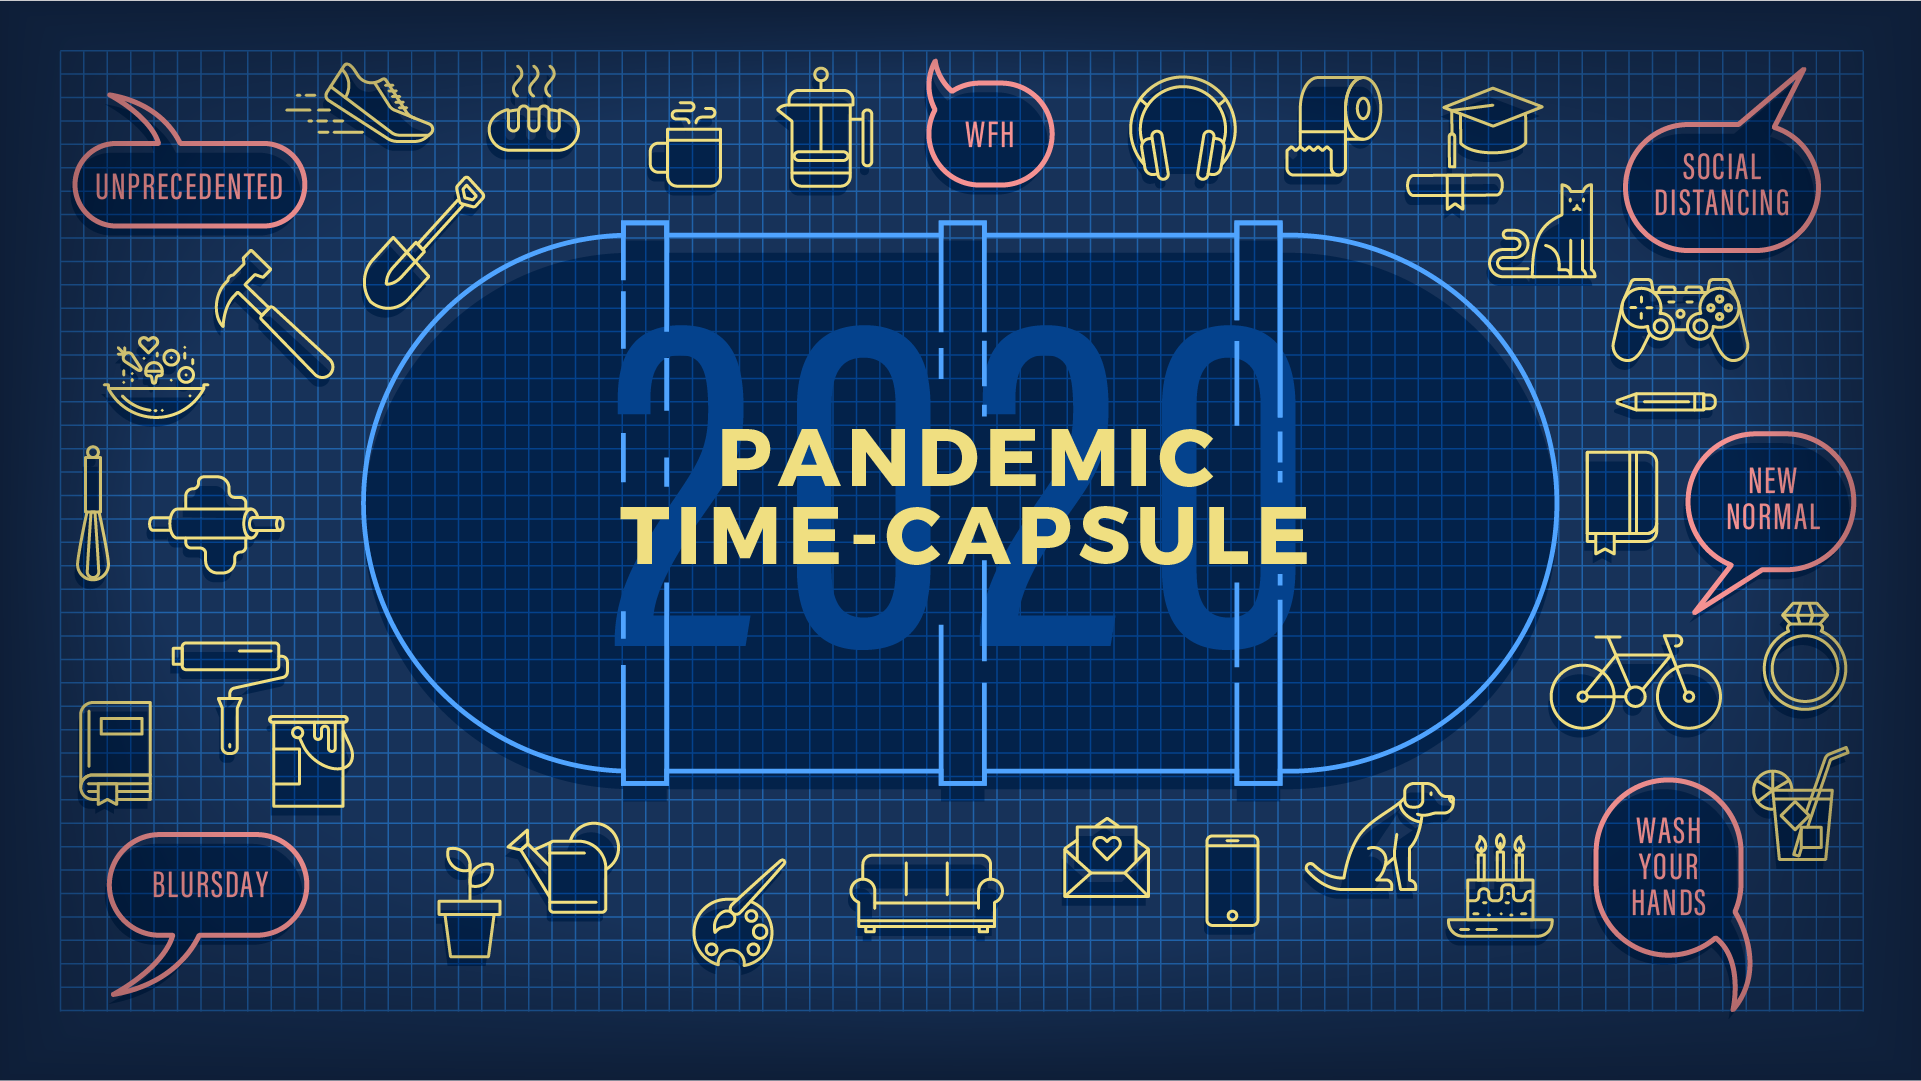 Your pandemic time capsule